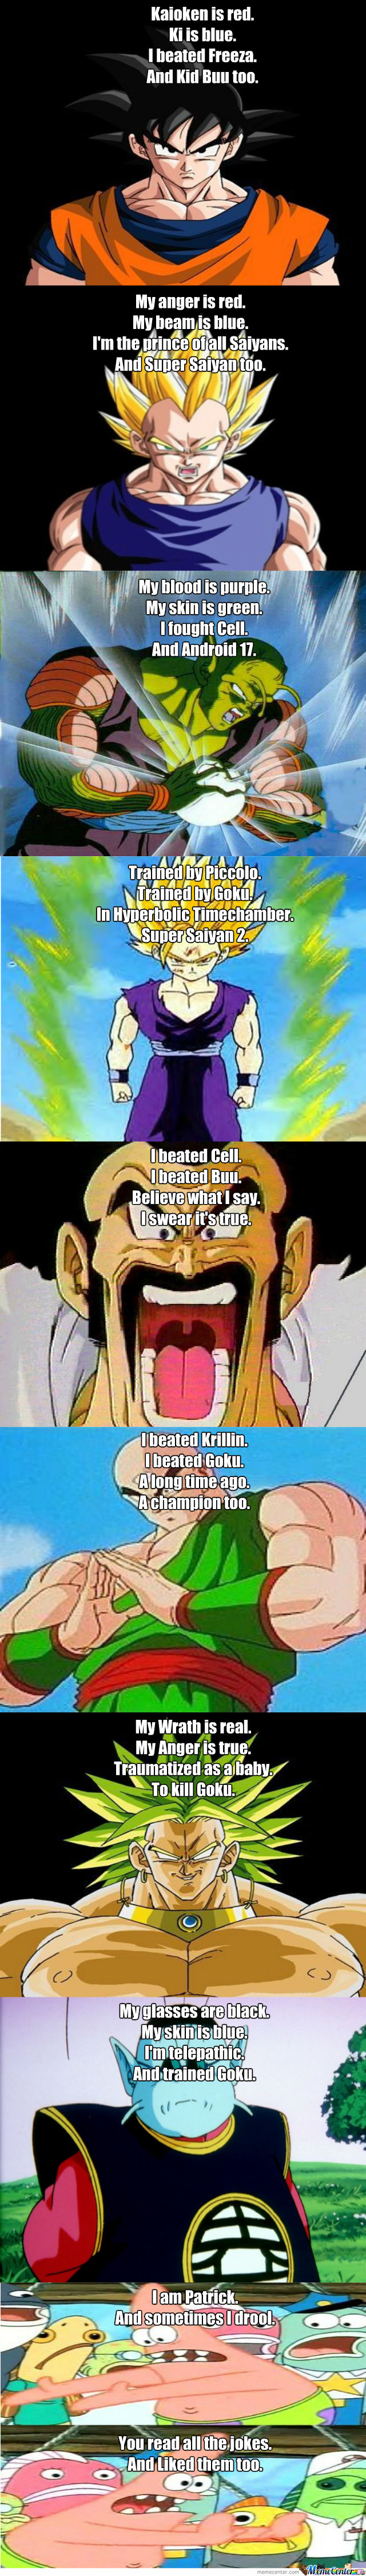 Funny Dbz Poems